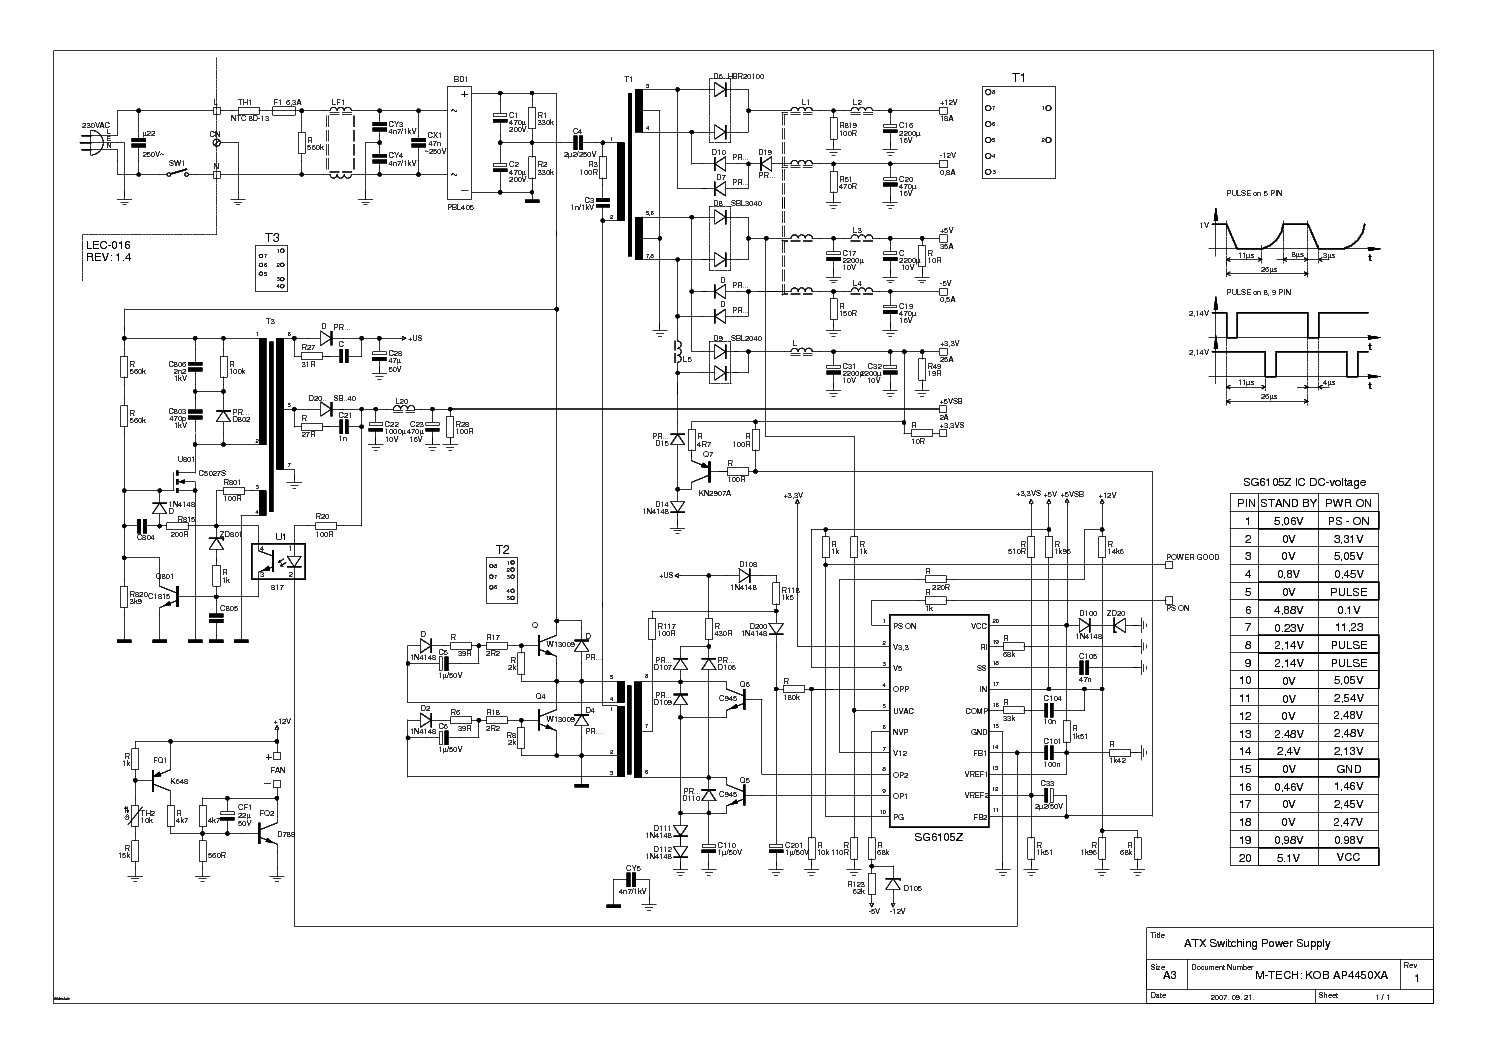 atx power supply schematic w jpg similiar atx power supply wiring diagram keywords 1489 x 1053 [ 1489 x 1053 Pixel ]